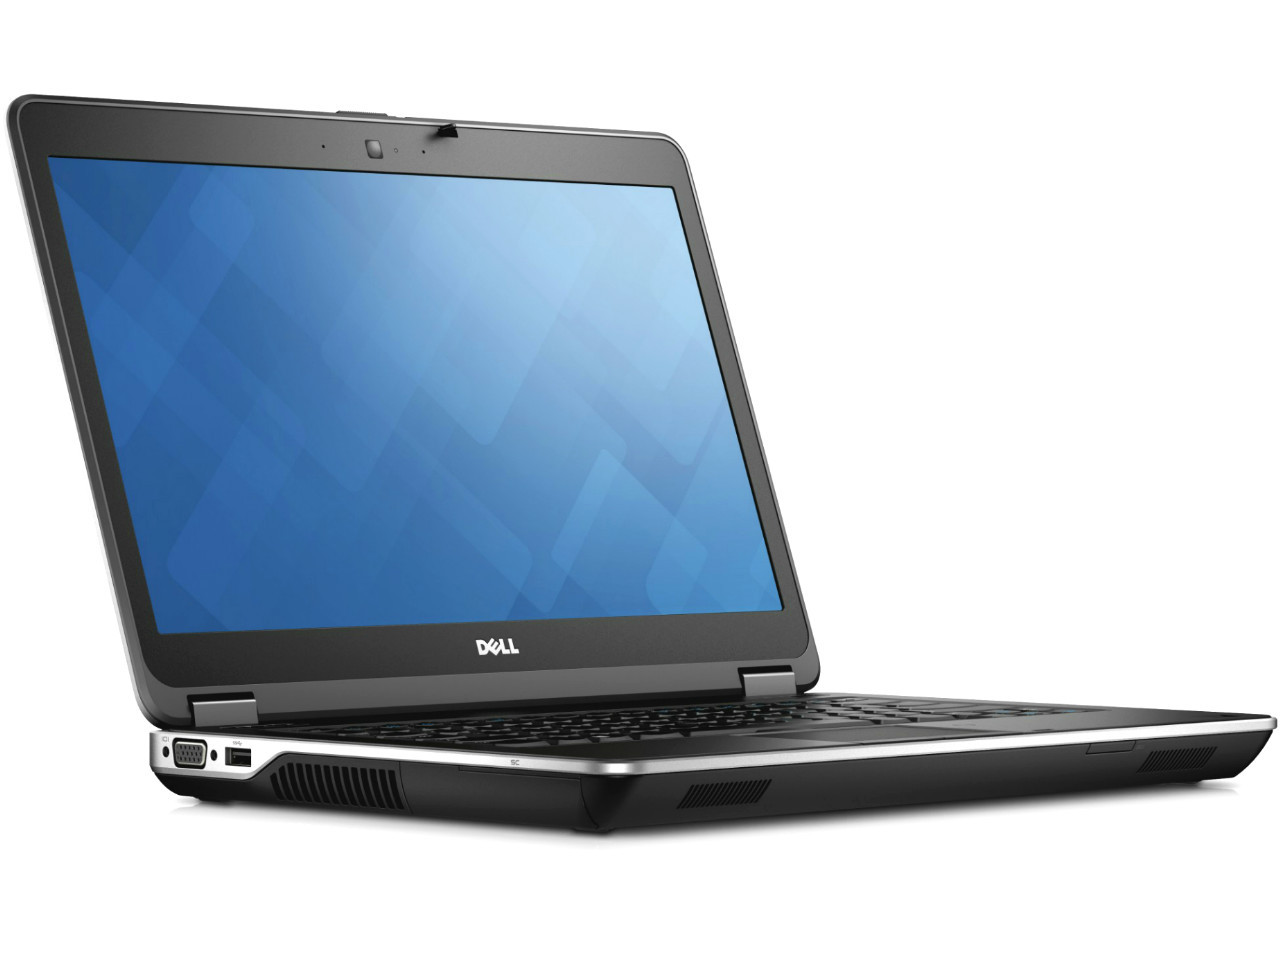 Dell Latitude E6440 Laptop Core i5 2.7GHz, 8GB Ram, 256GB SSD, DVD-RW, Windows 10 Pro 64 Notebook